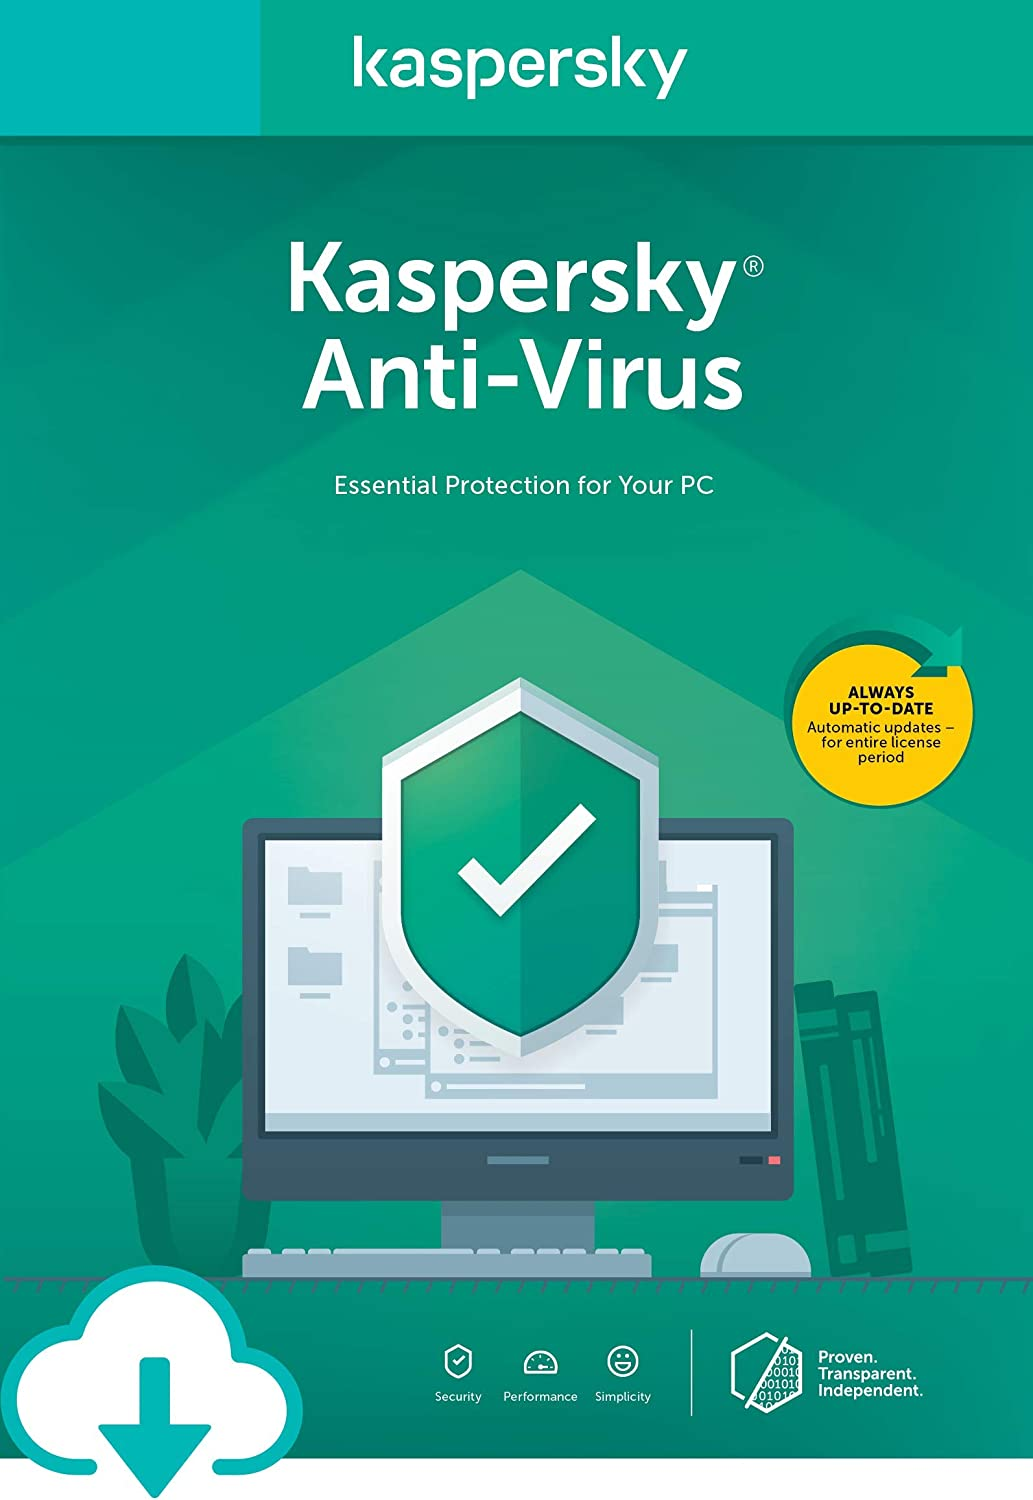 Amazon.com: Kaspersky Anti-Virus | 1 PC | 1 Month [Subscription]: Software